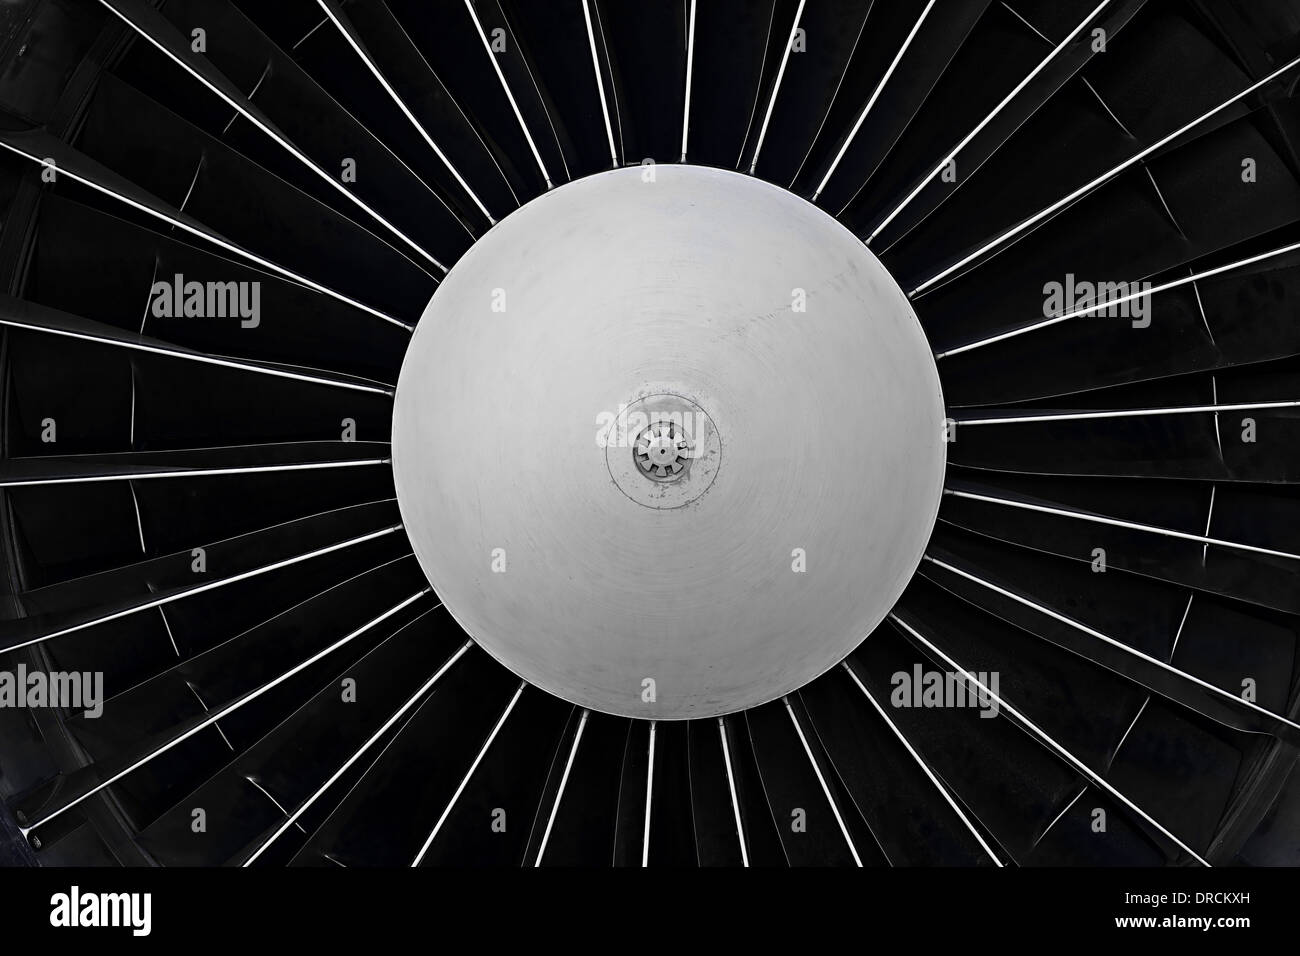 Jet turbine - Stock Image